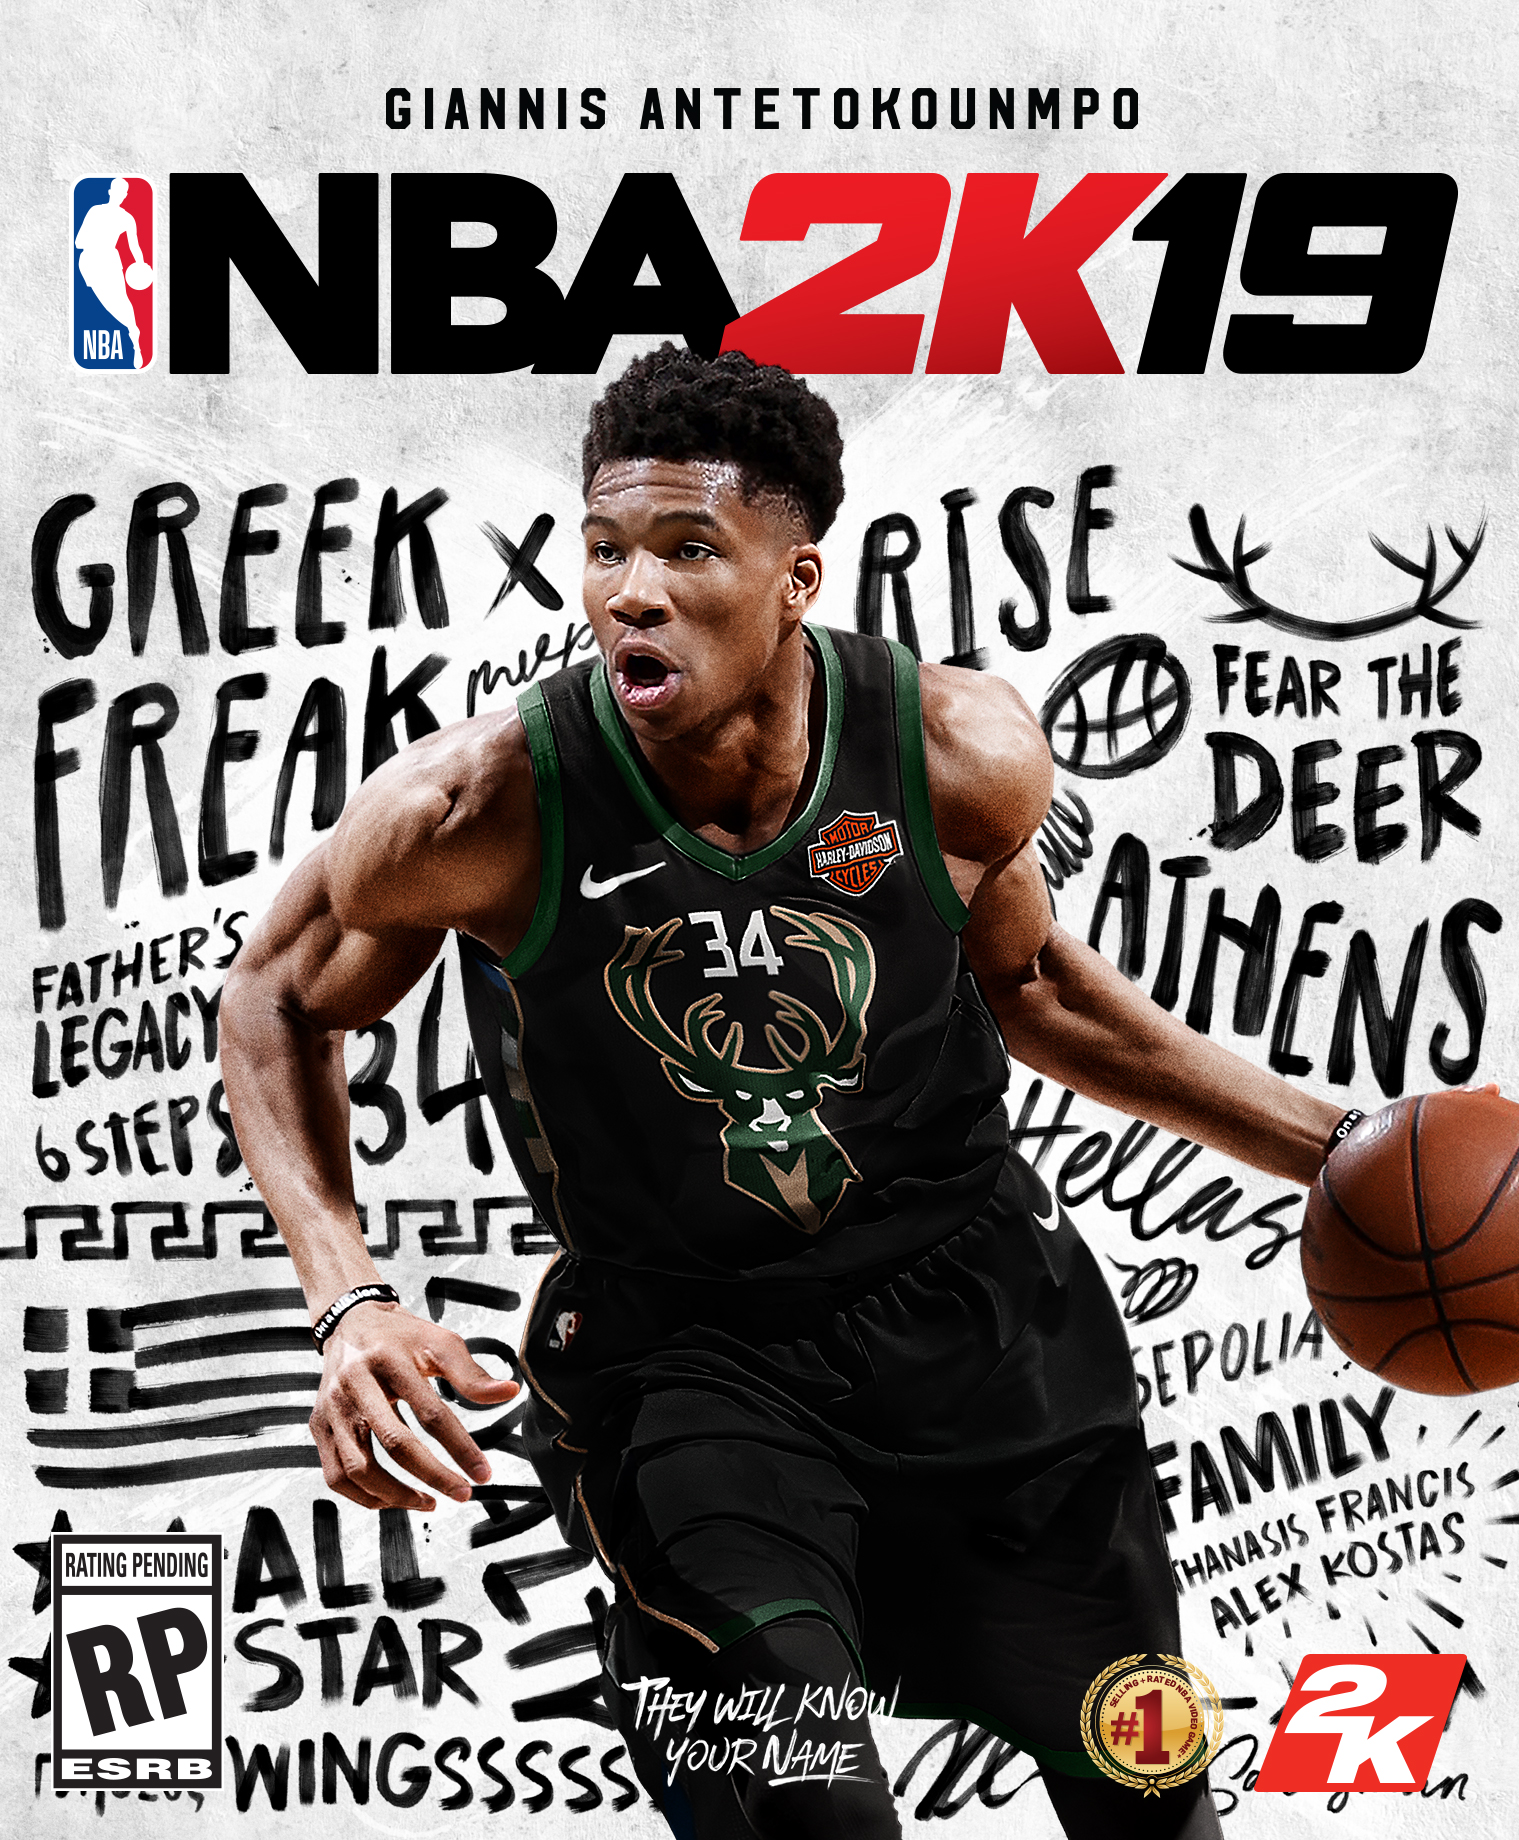 Giannis Antetokounmpo in NBA 2k19 (2018)